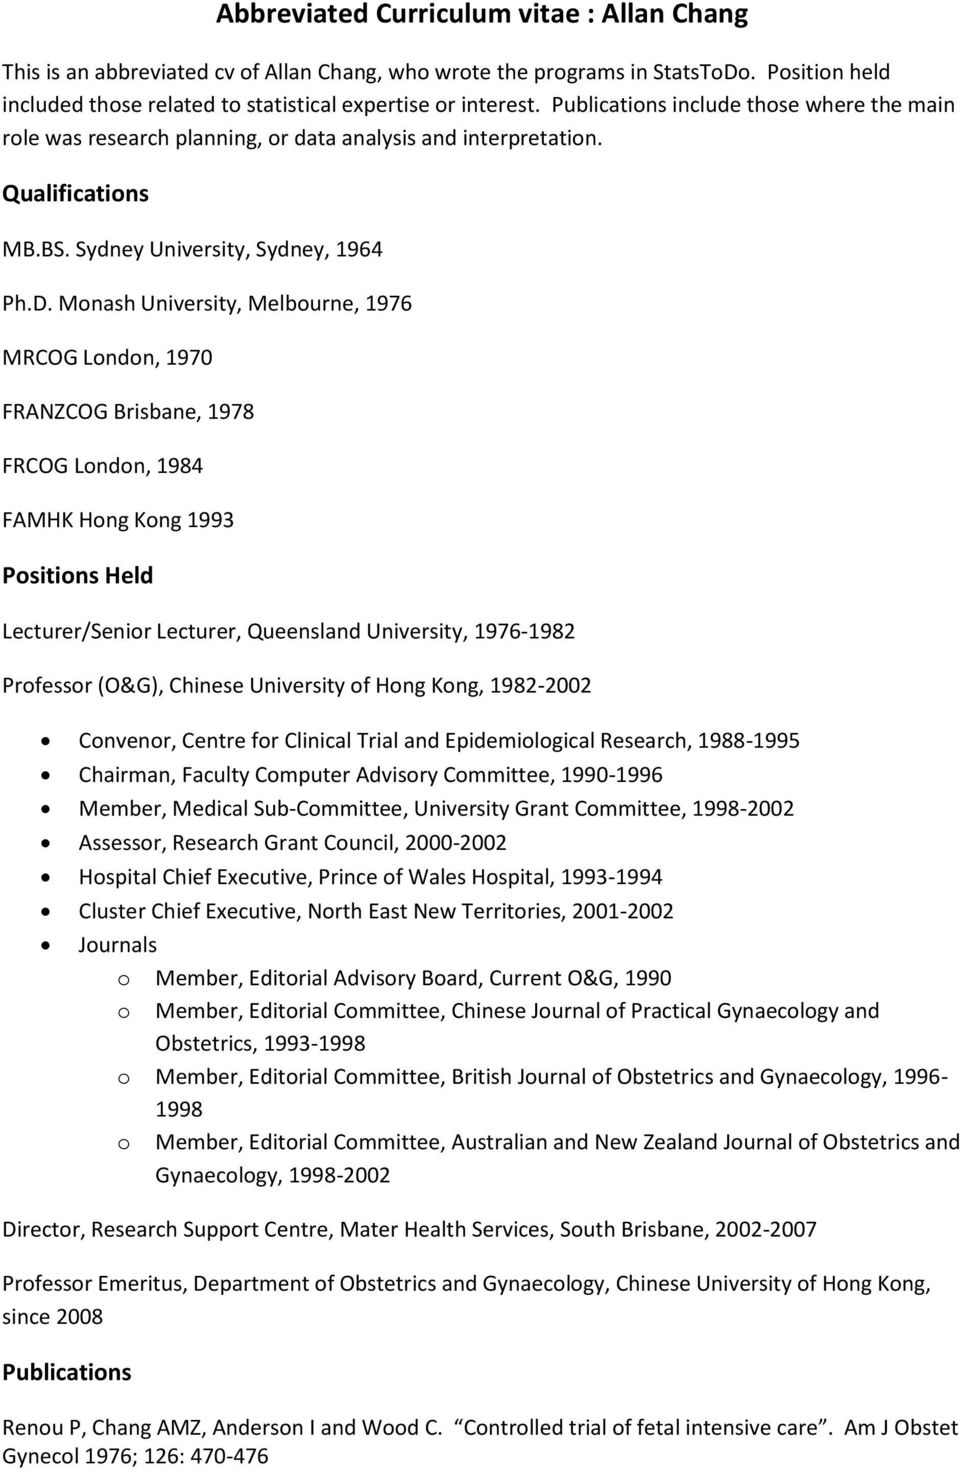 Monash University, Melbourne, 1976 MRCOG London, 1970 FRANZCOG Brisbane, 1978 FRCOG London, 1984 FAMHK Hong Kong 1993 Positions Held Lecturer/Senior Lecturer, Queensland University, 1976-1982